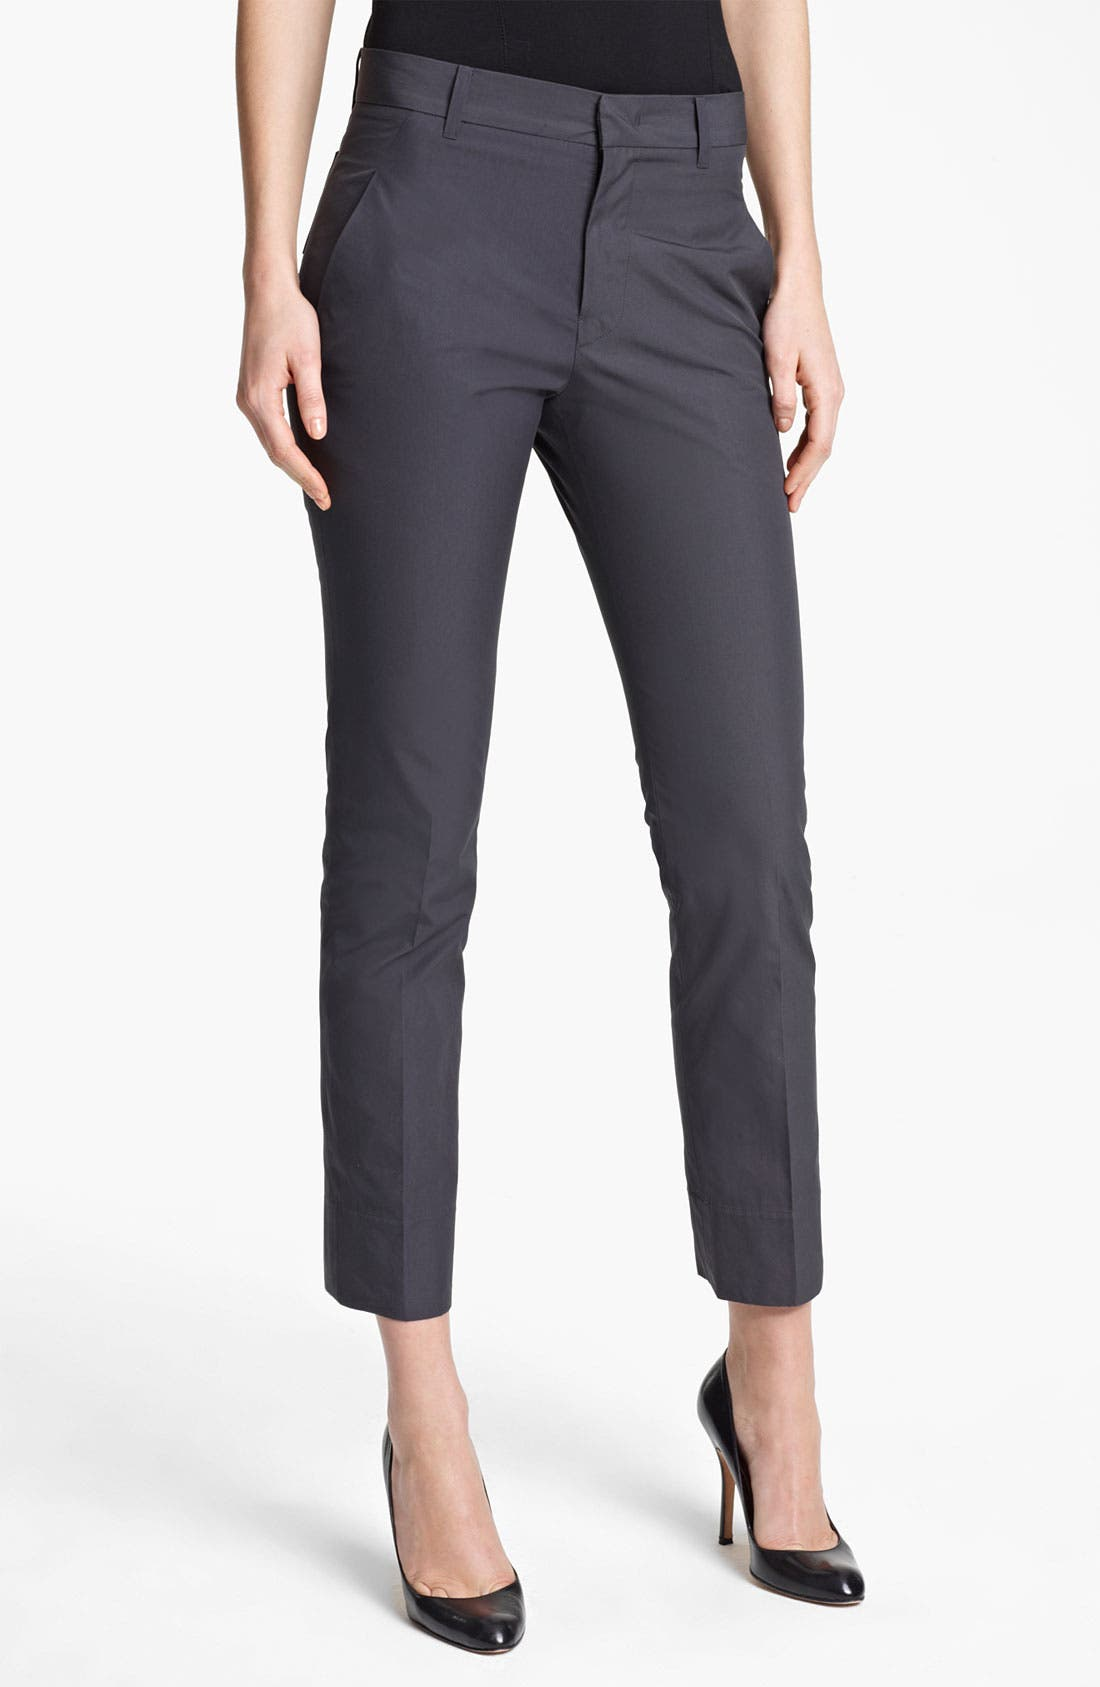 Main Image - Jil Sander 'Niccolo' Slim Leg Cotton Taffeta Ankle Pants